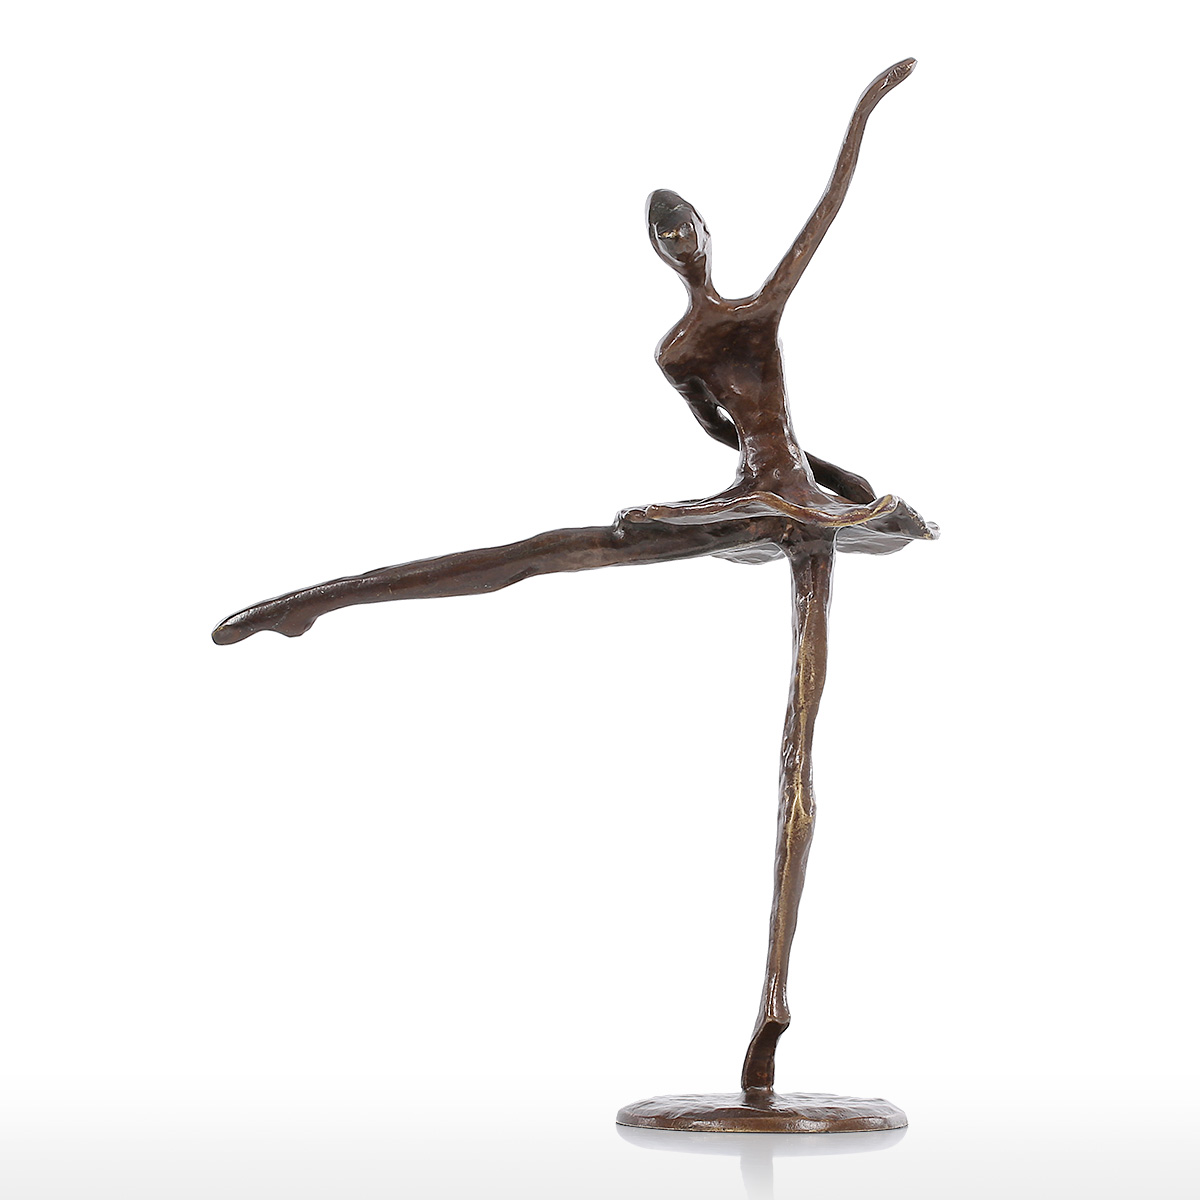 online get cheap metal dancing sculpture aliexpresscom  alibaba  - tooarts statuette ballet modern dance bronze statue metal sculpture homedecor figurines gift home decoration accessories